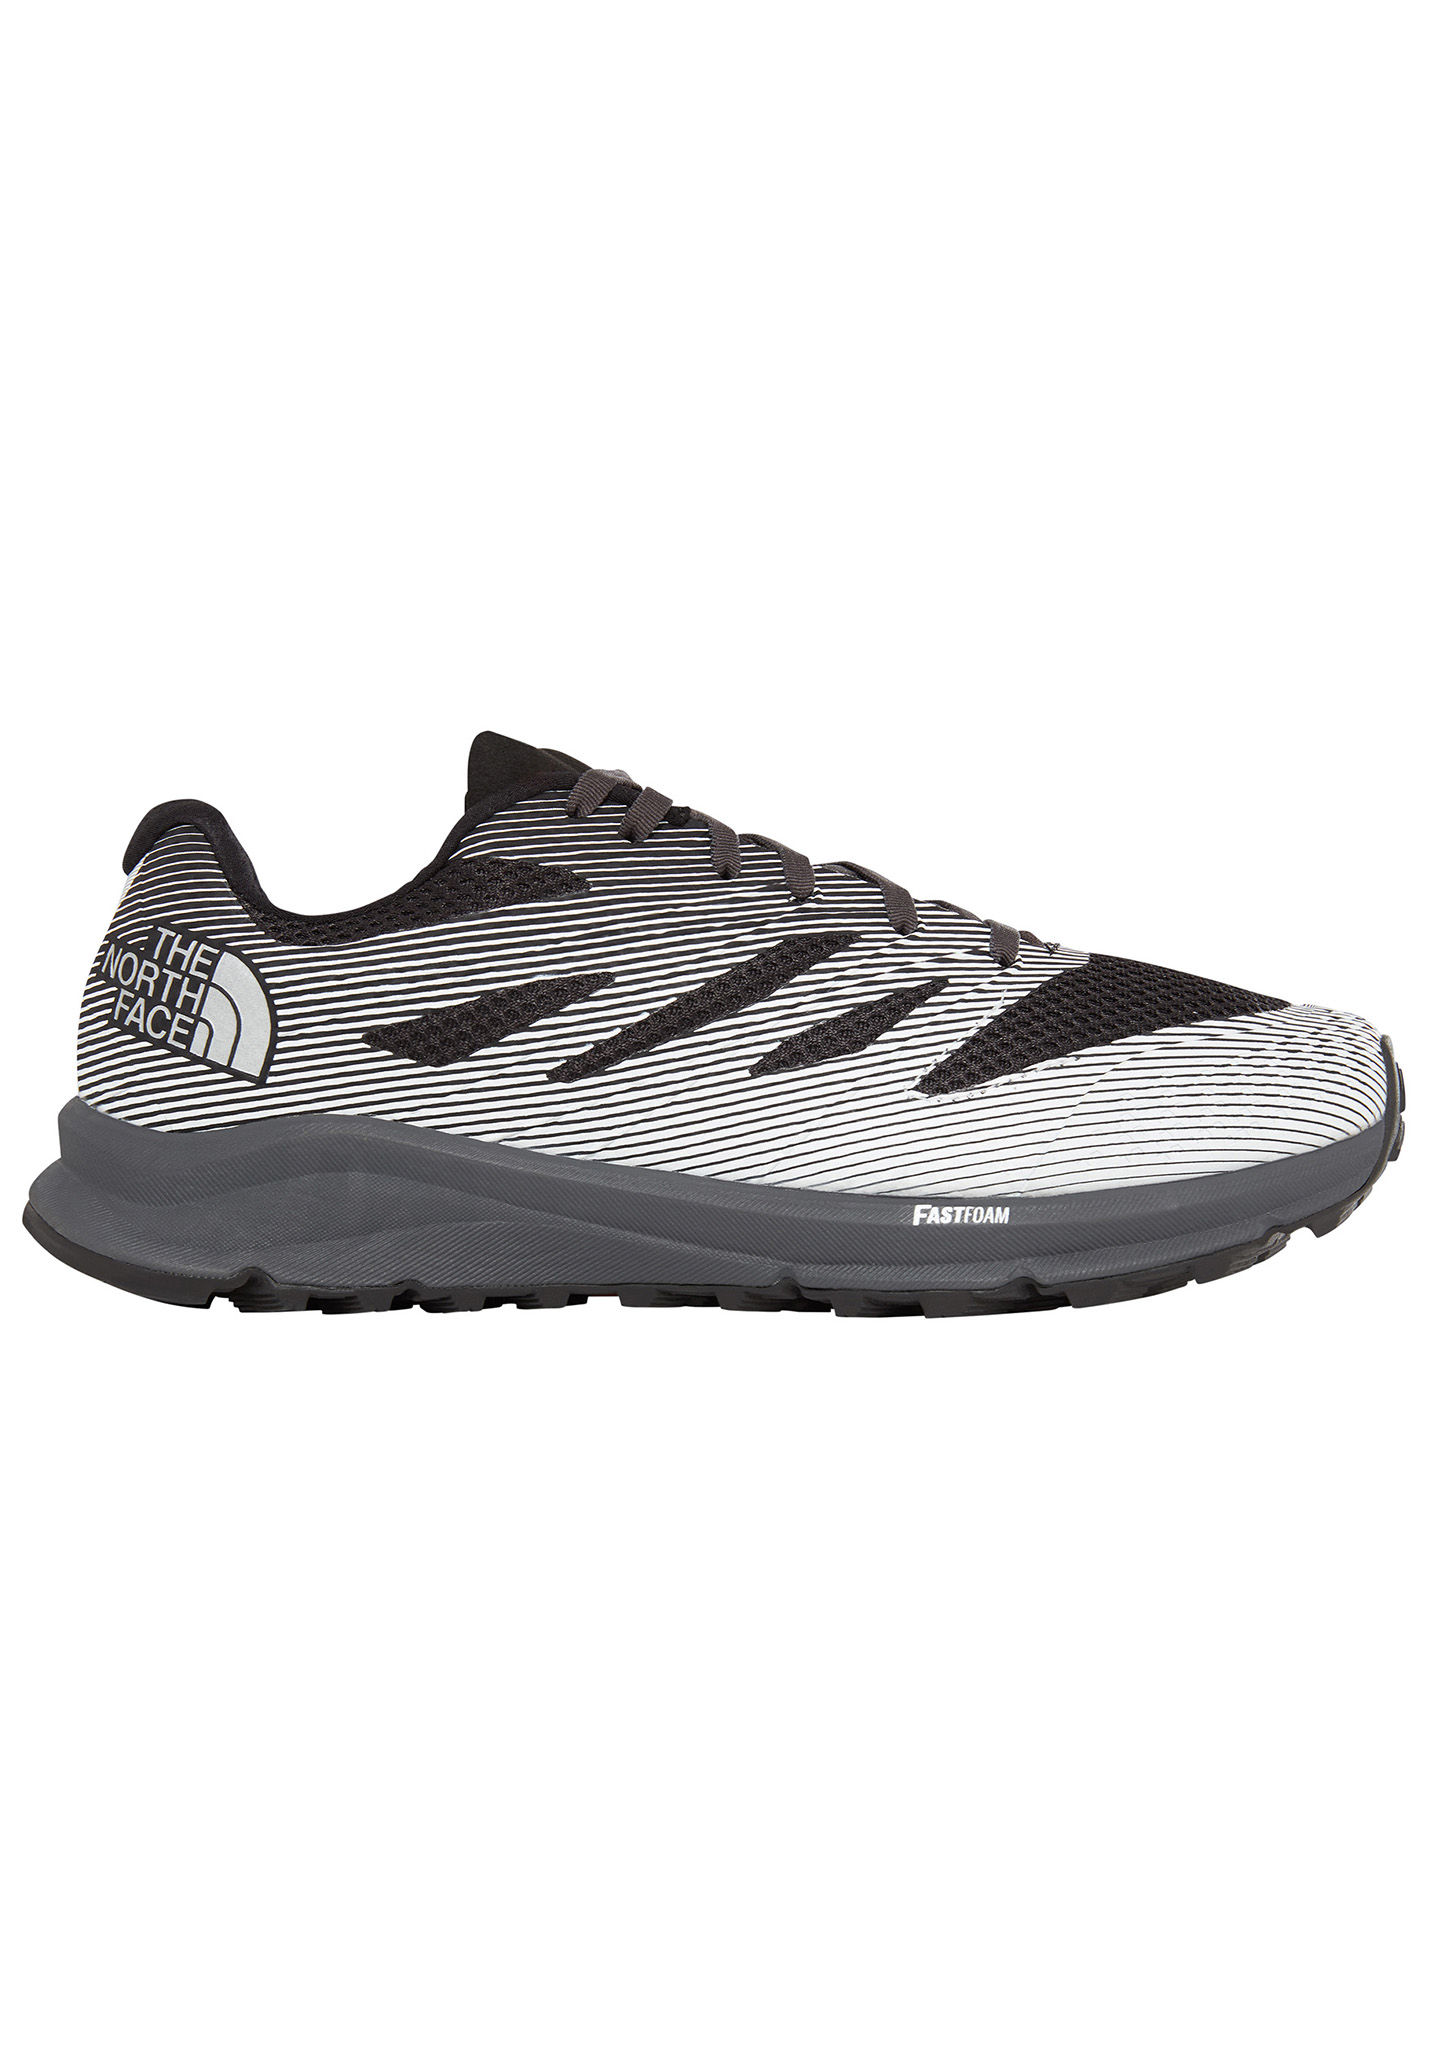 63a45f8a8cf THE NORTH FACE Ultra Tr III - Trekking Shoes for Men - Black - Planet Sports